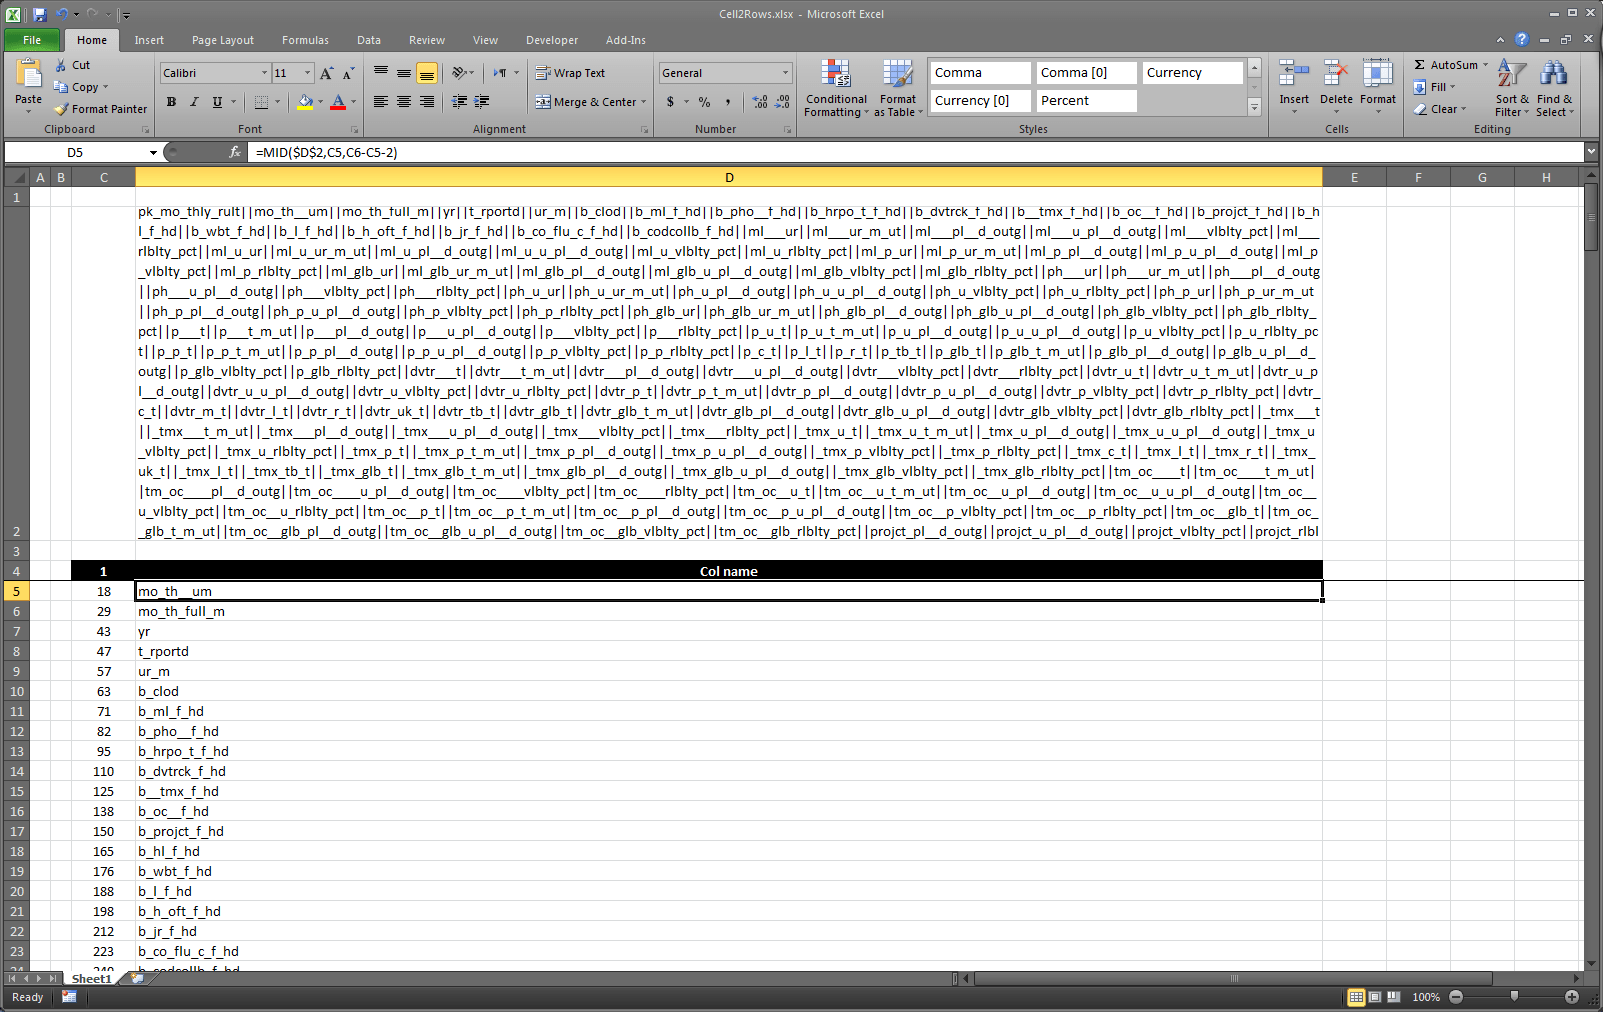 Dynamically Text to column